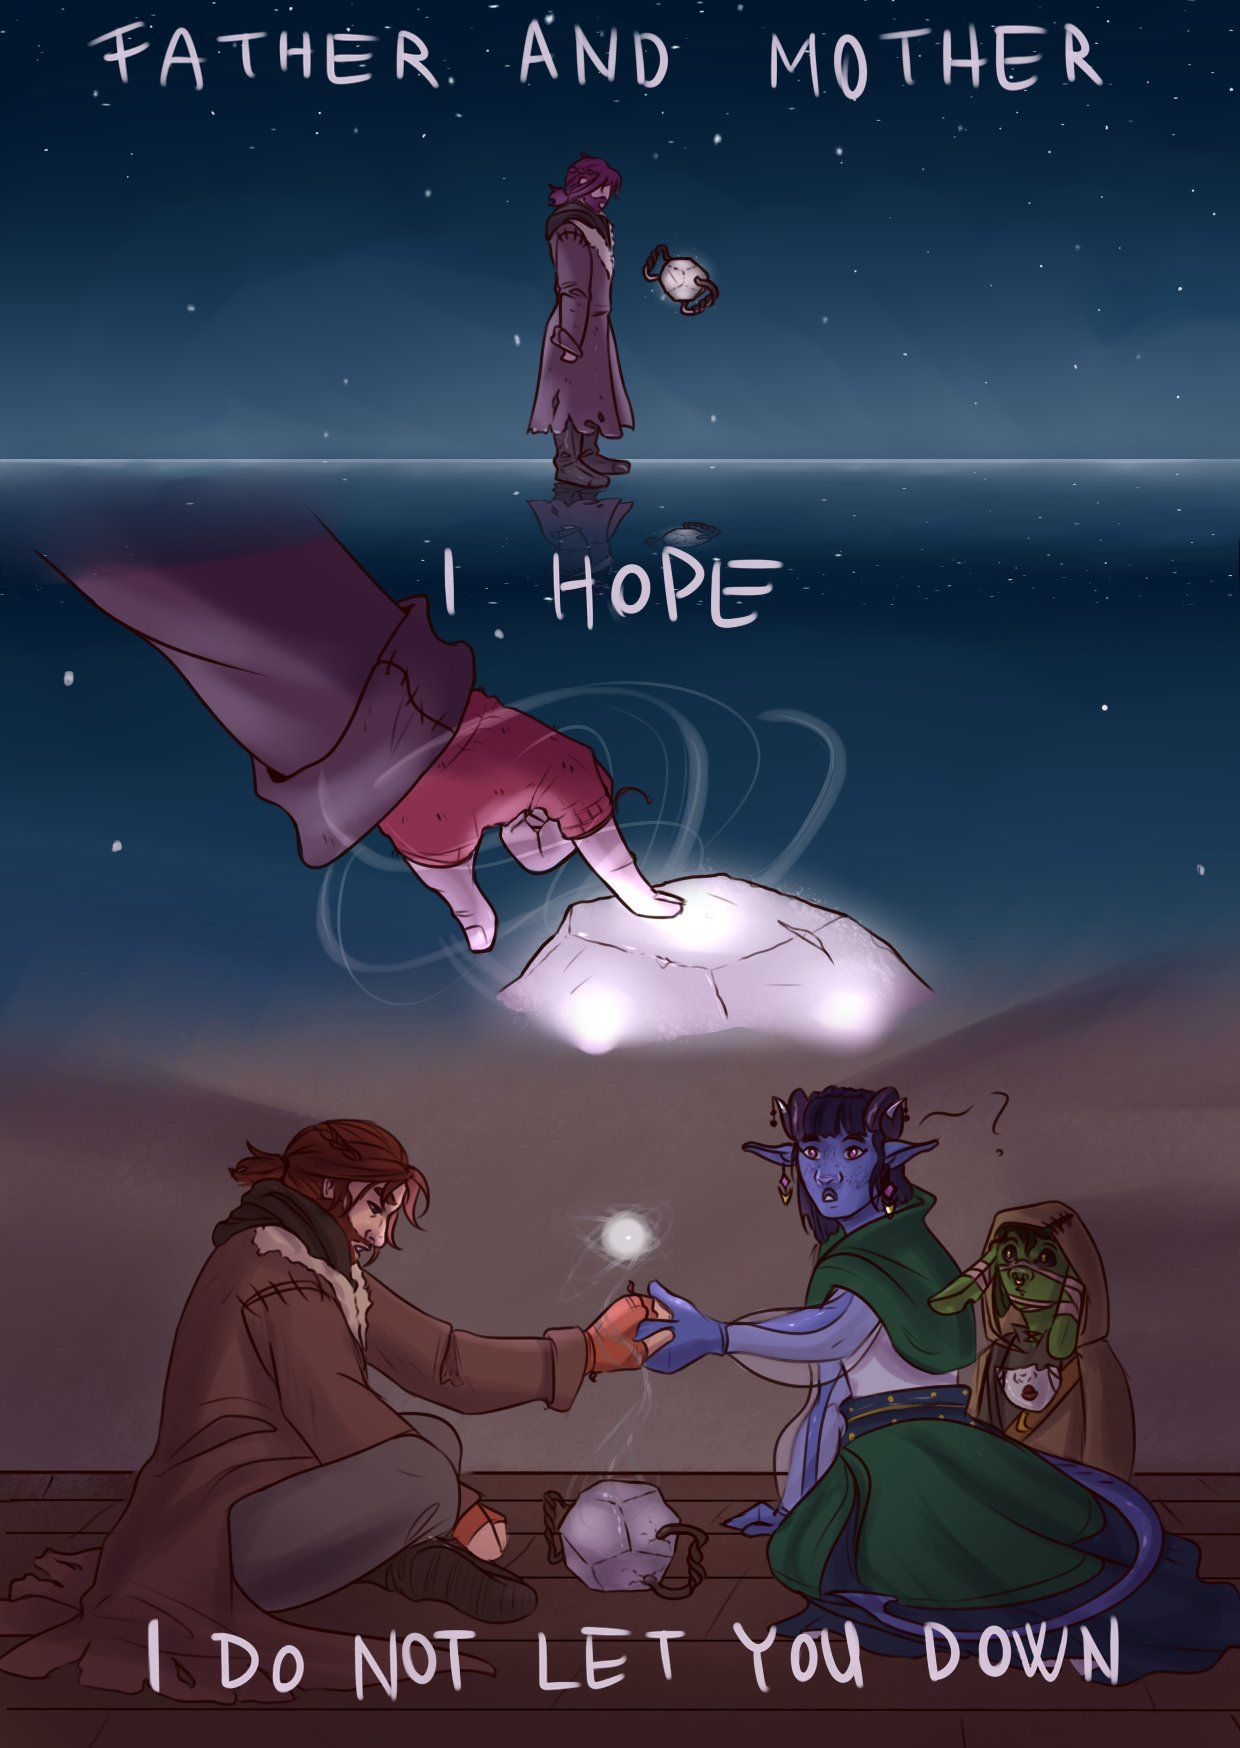 16 Criticalrolefanart Hashtag On Twitter: Critical Role Fan Art, Critical